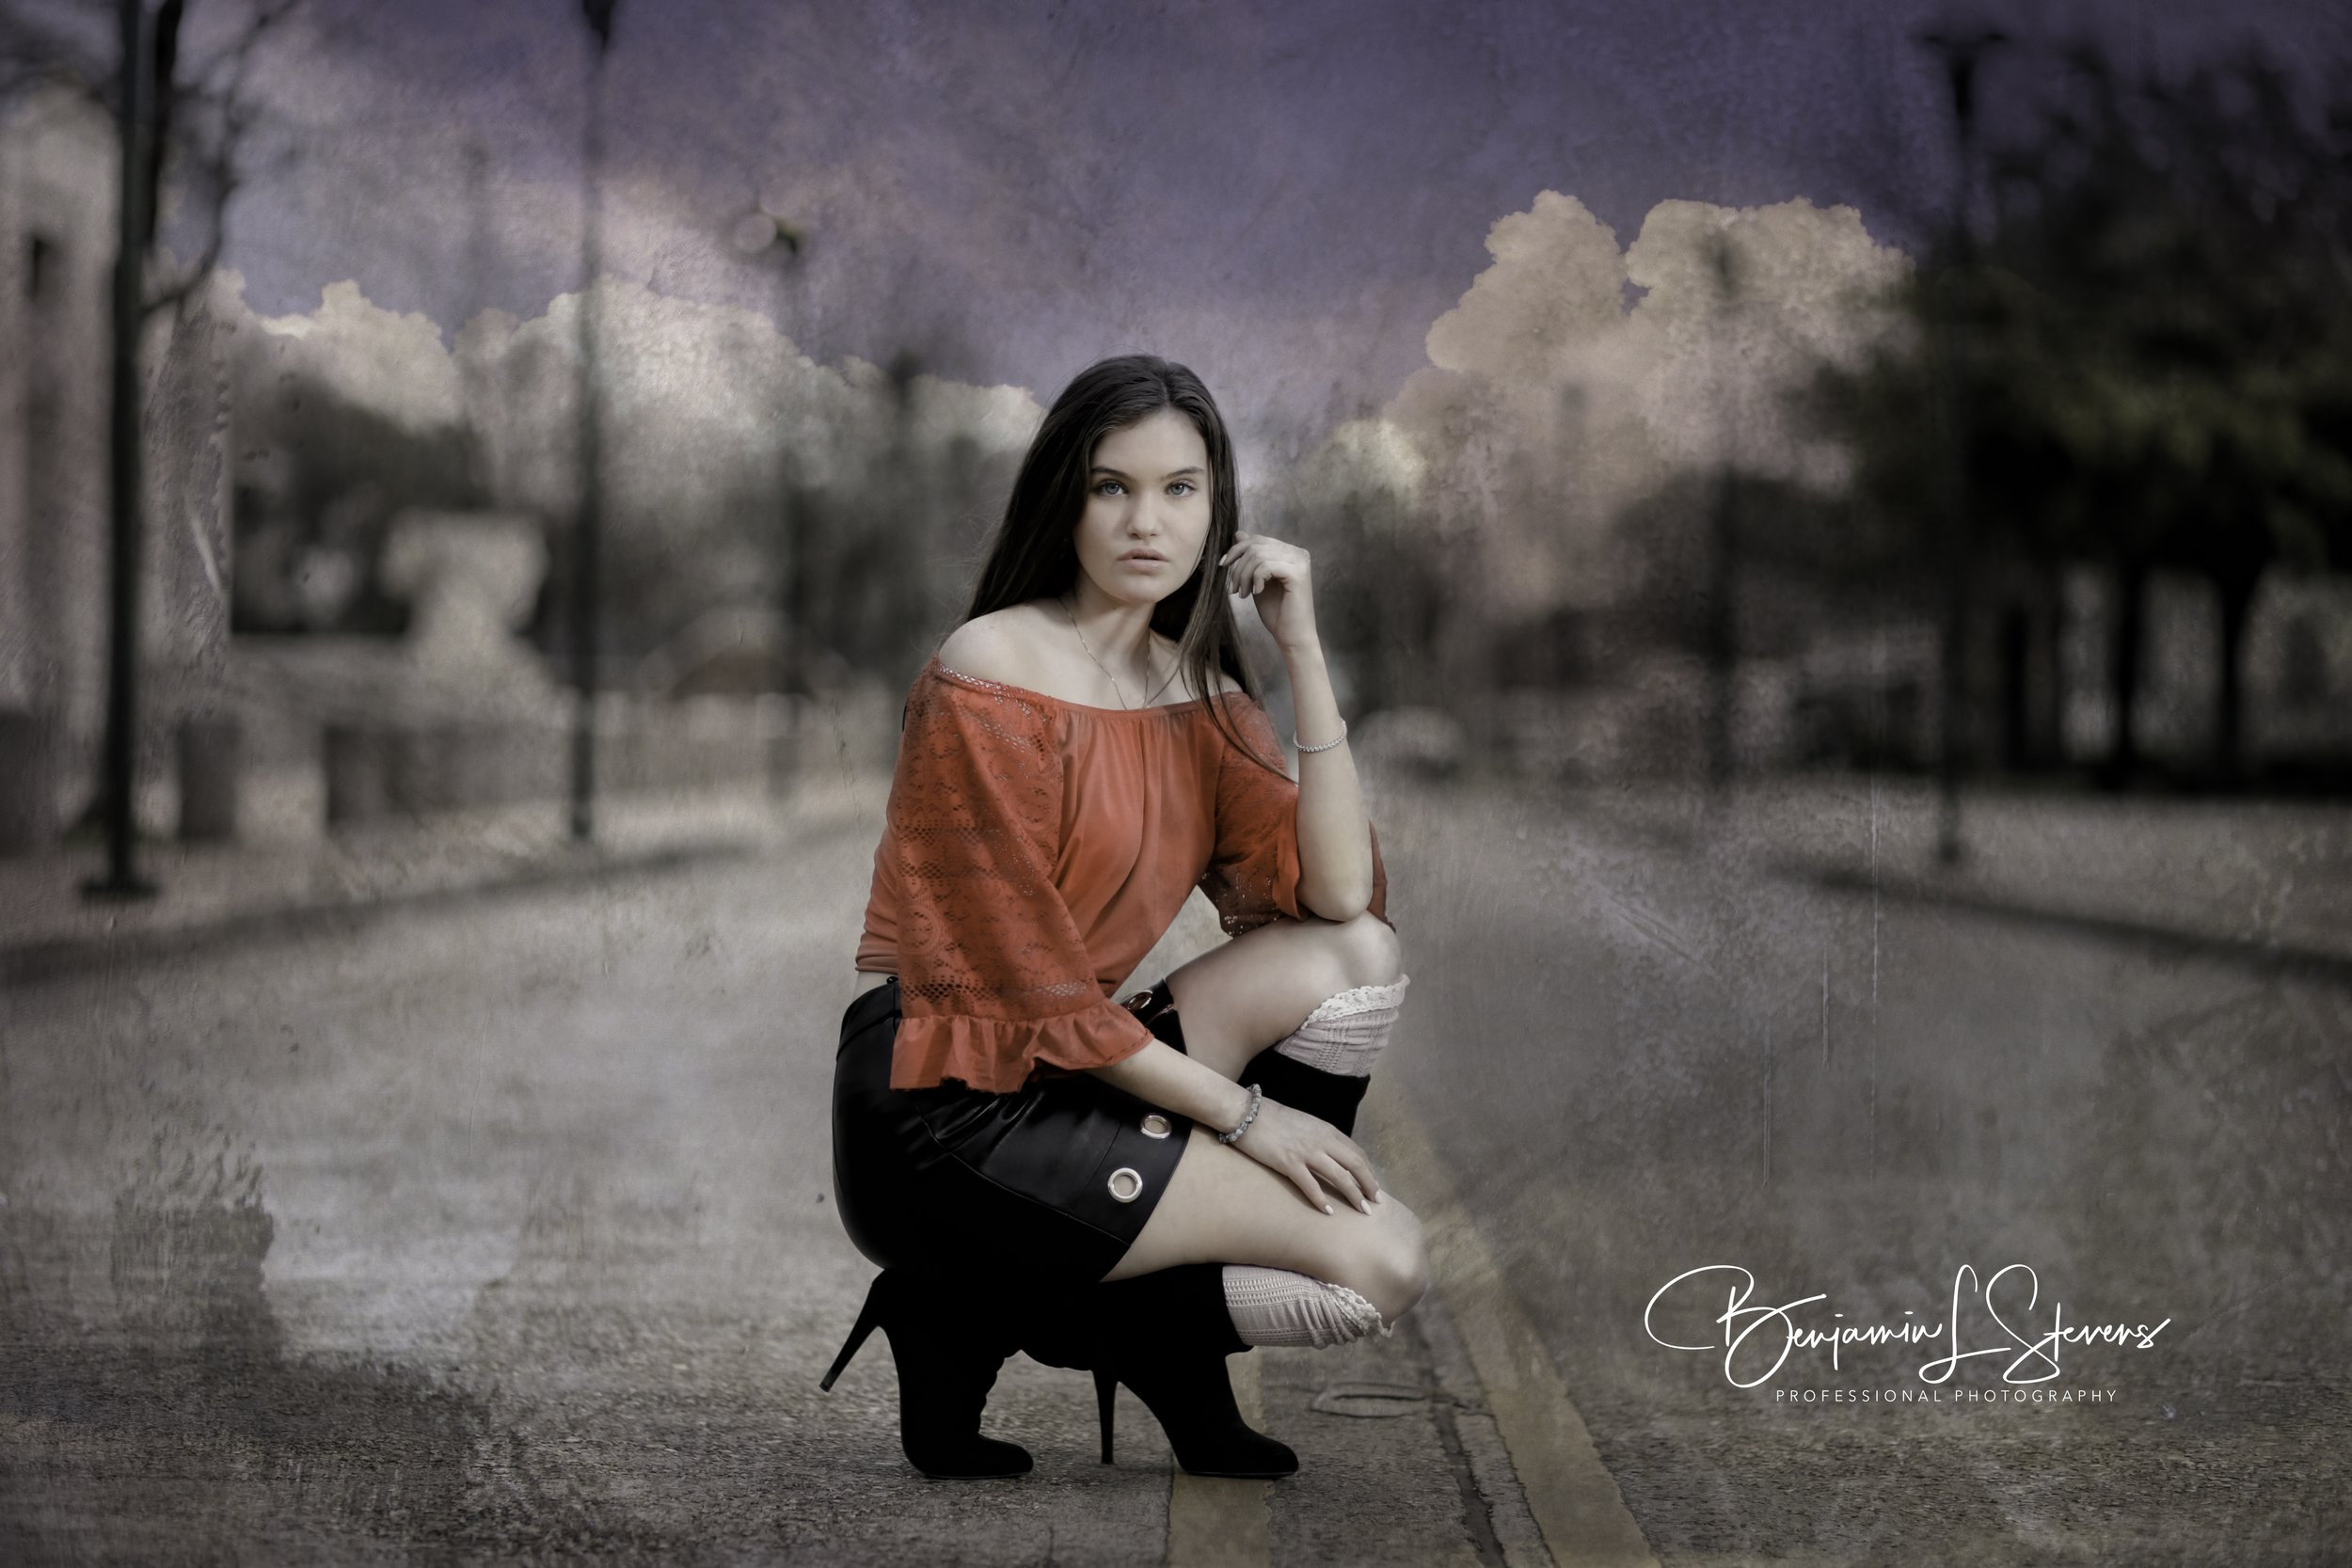 Middle of road 'Photo-Shoot' with High School Senior, This Stop Traffic!